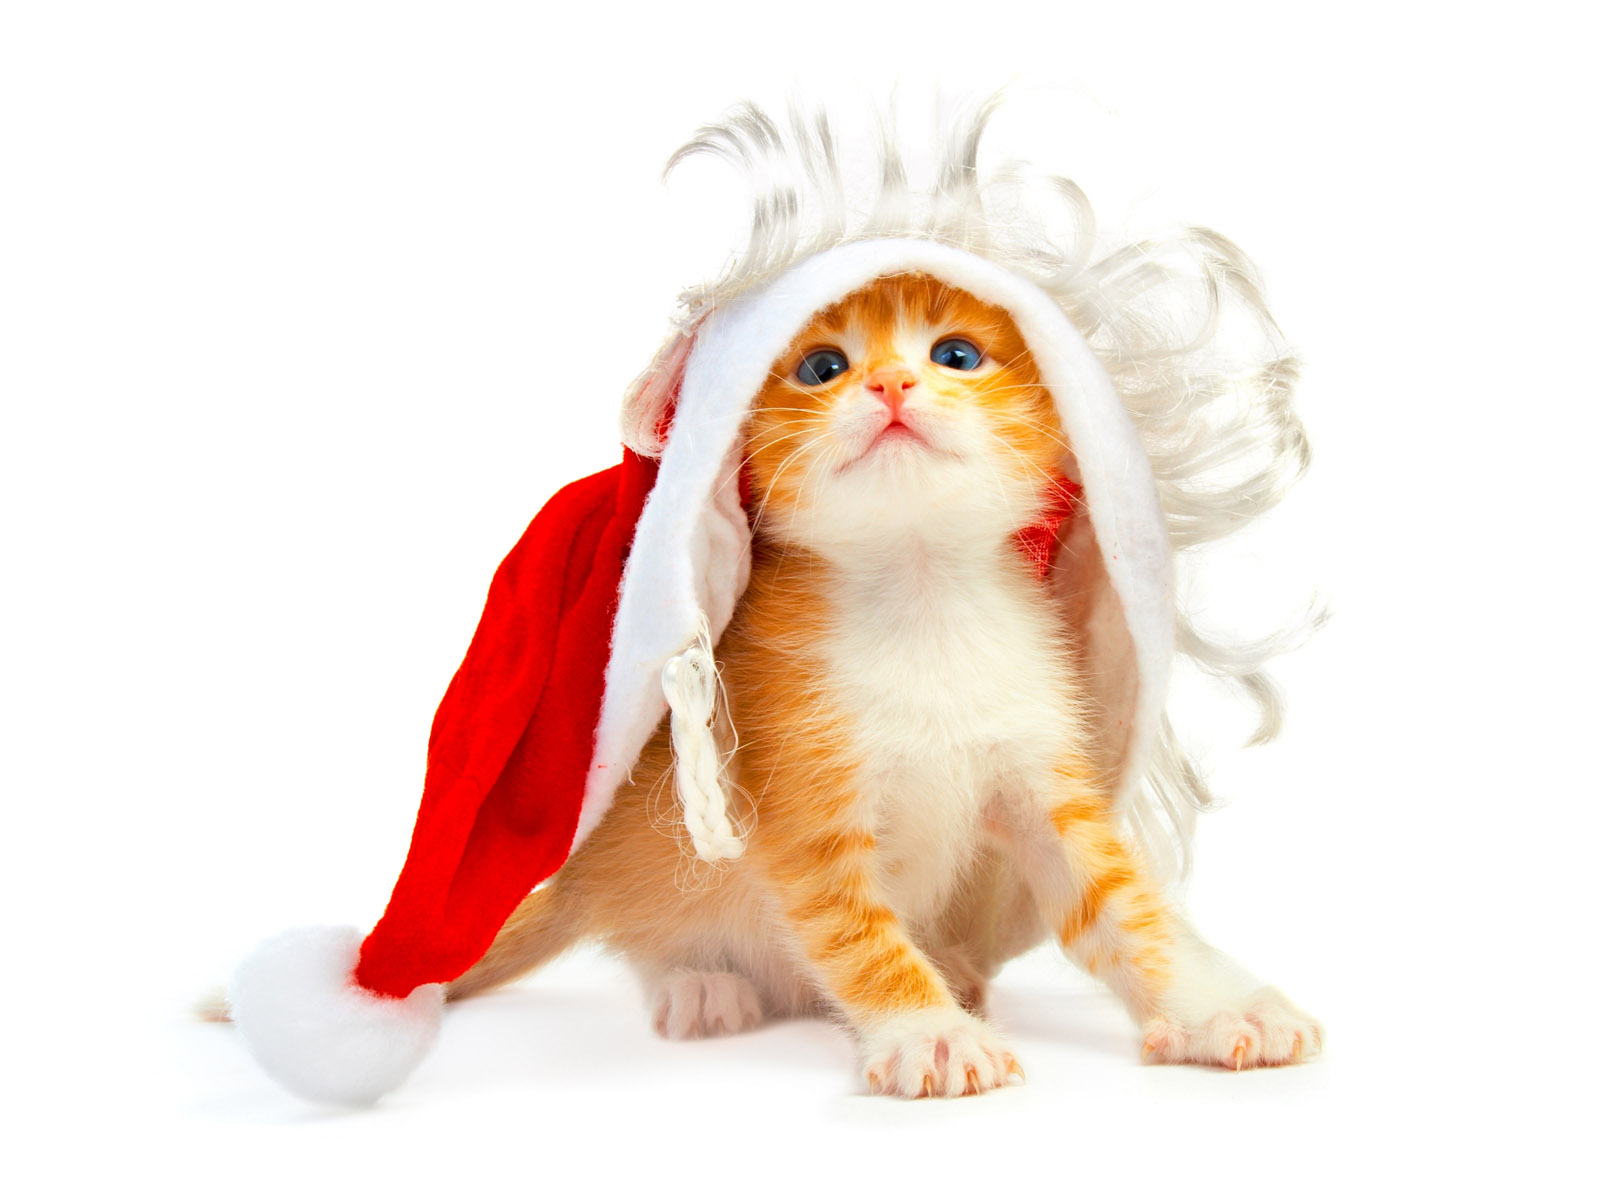 Cute Christmas Wallpapers: Kitty World: Christmas Kitten Pictures